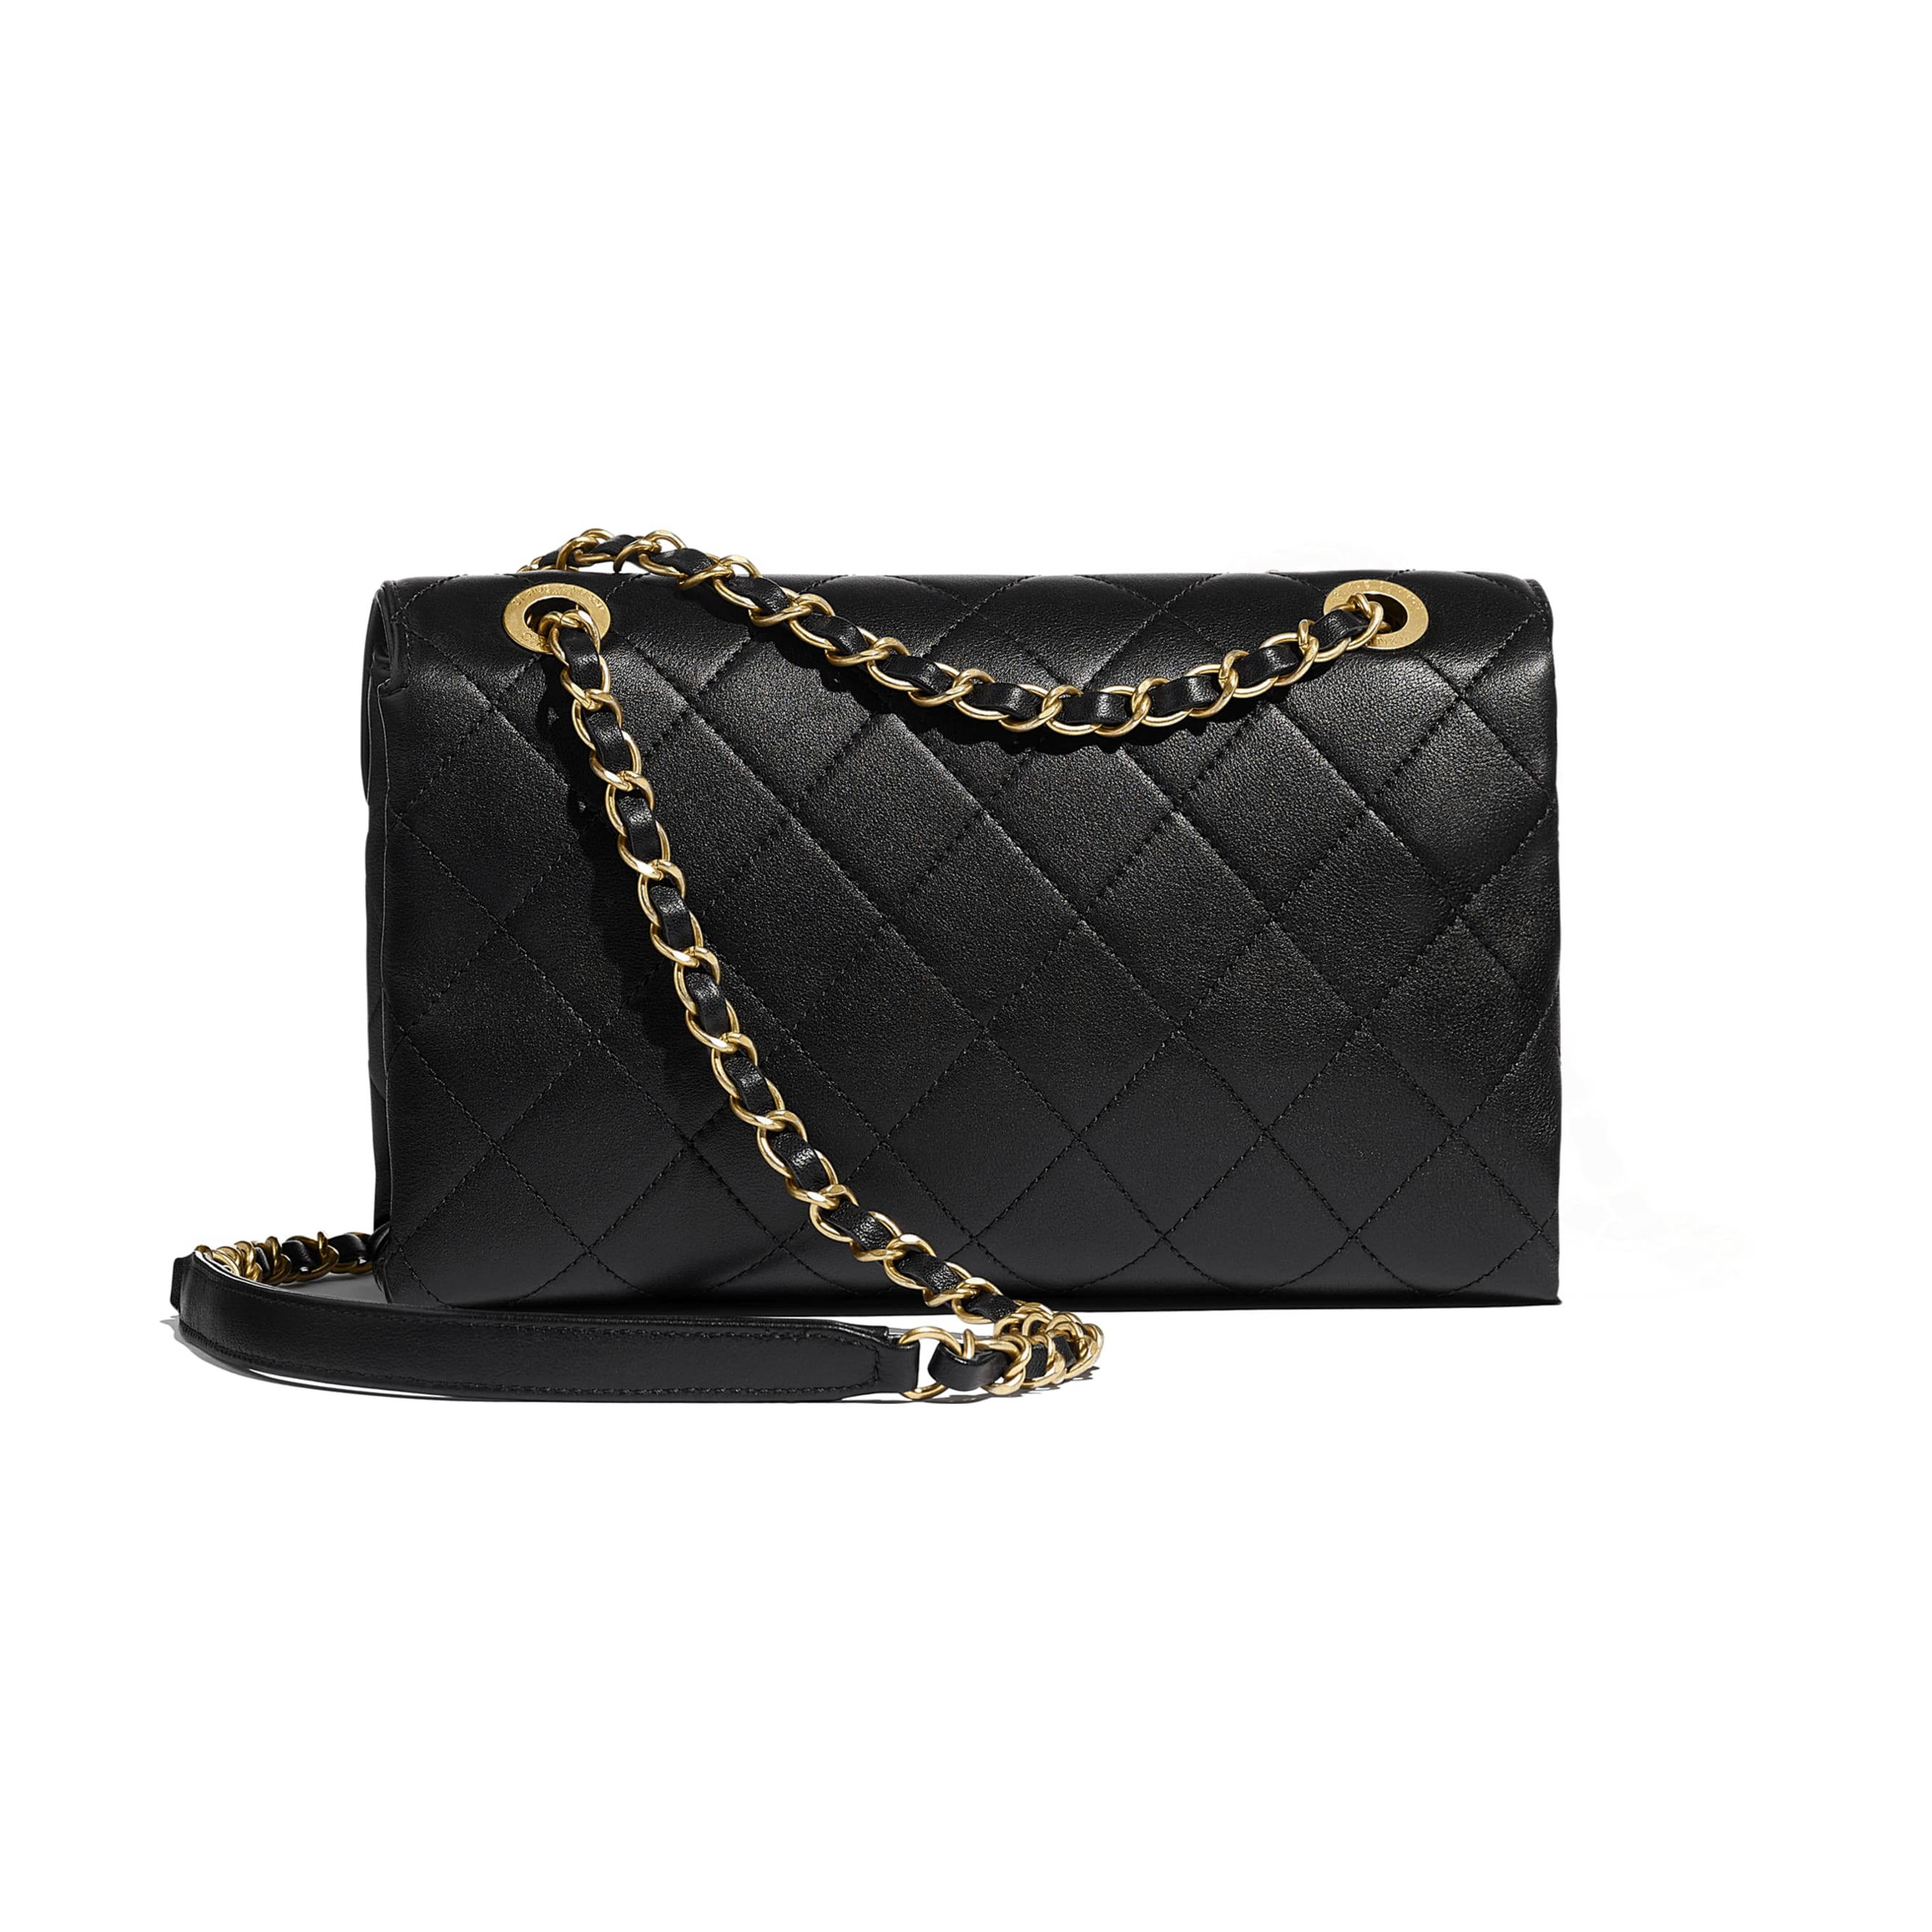 Flap Bag - Black - Calfskin & Gold-Tone Metal - Alternative view - see standard sized version